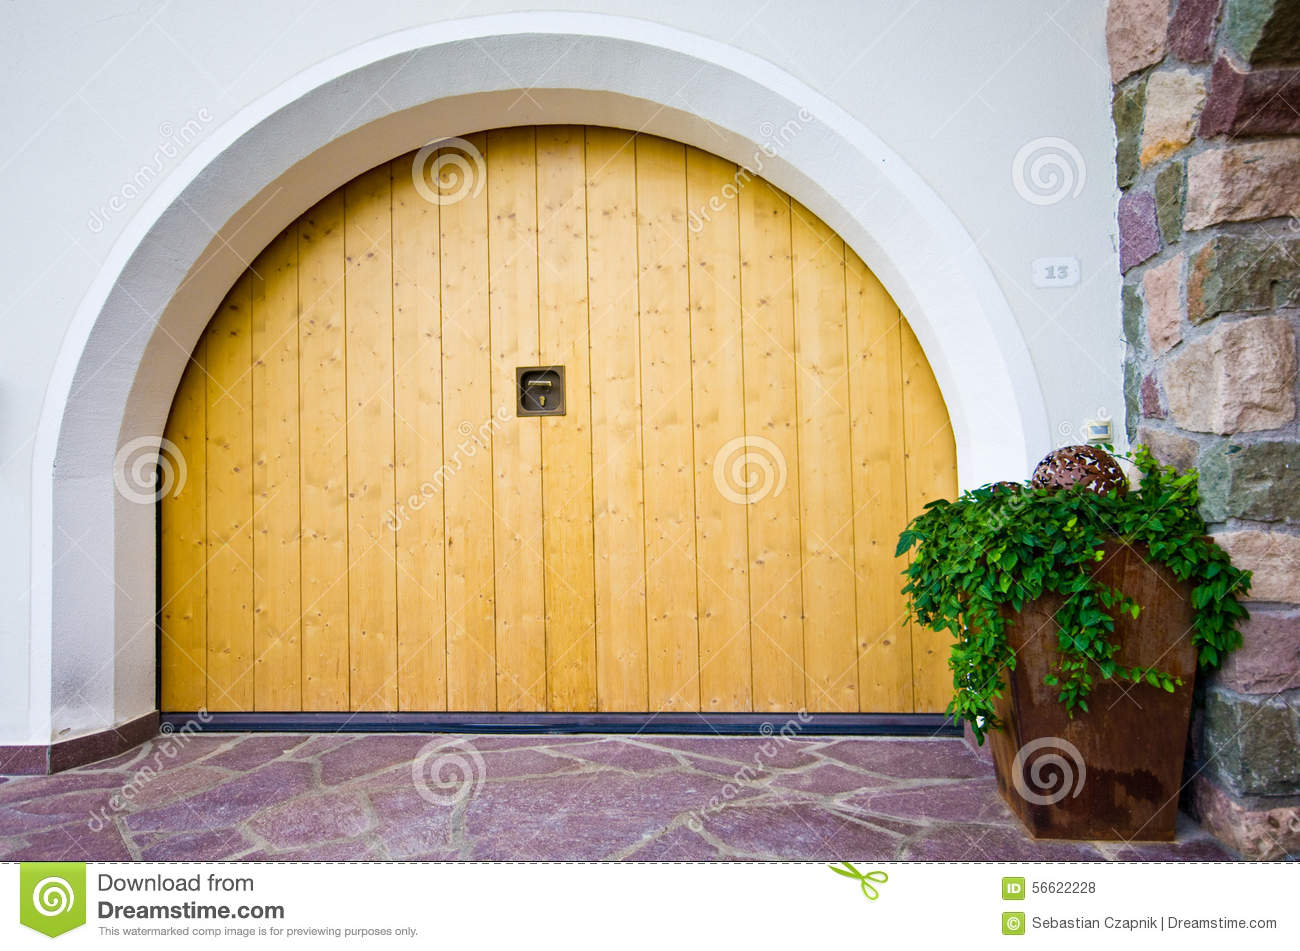 Alpine architecture arched garage door stock photo Italian garage doors